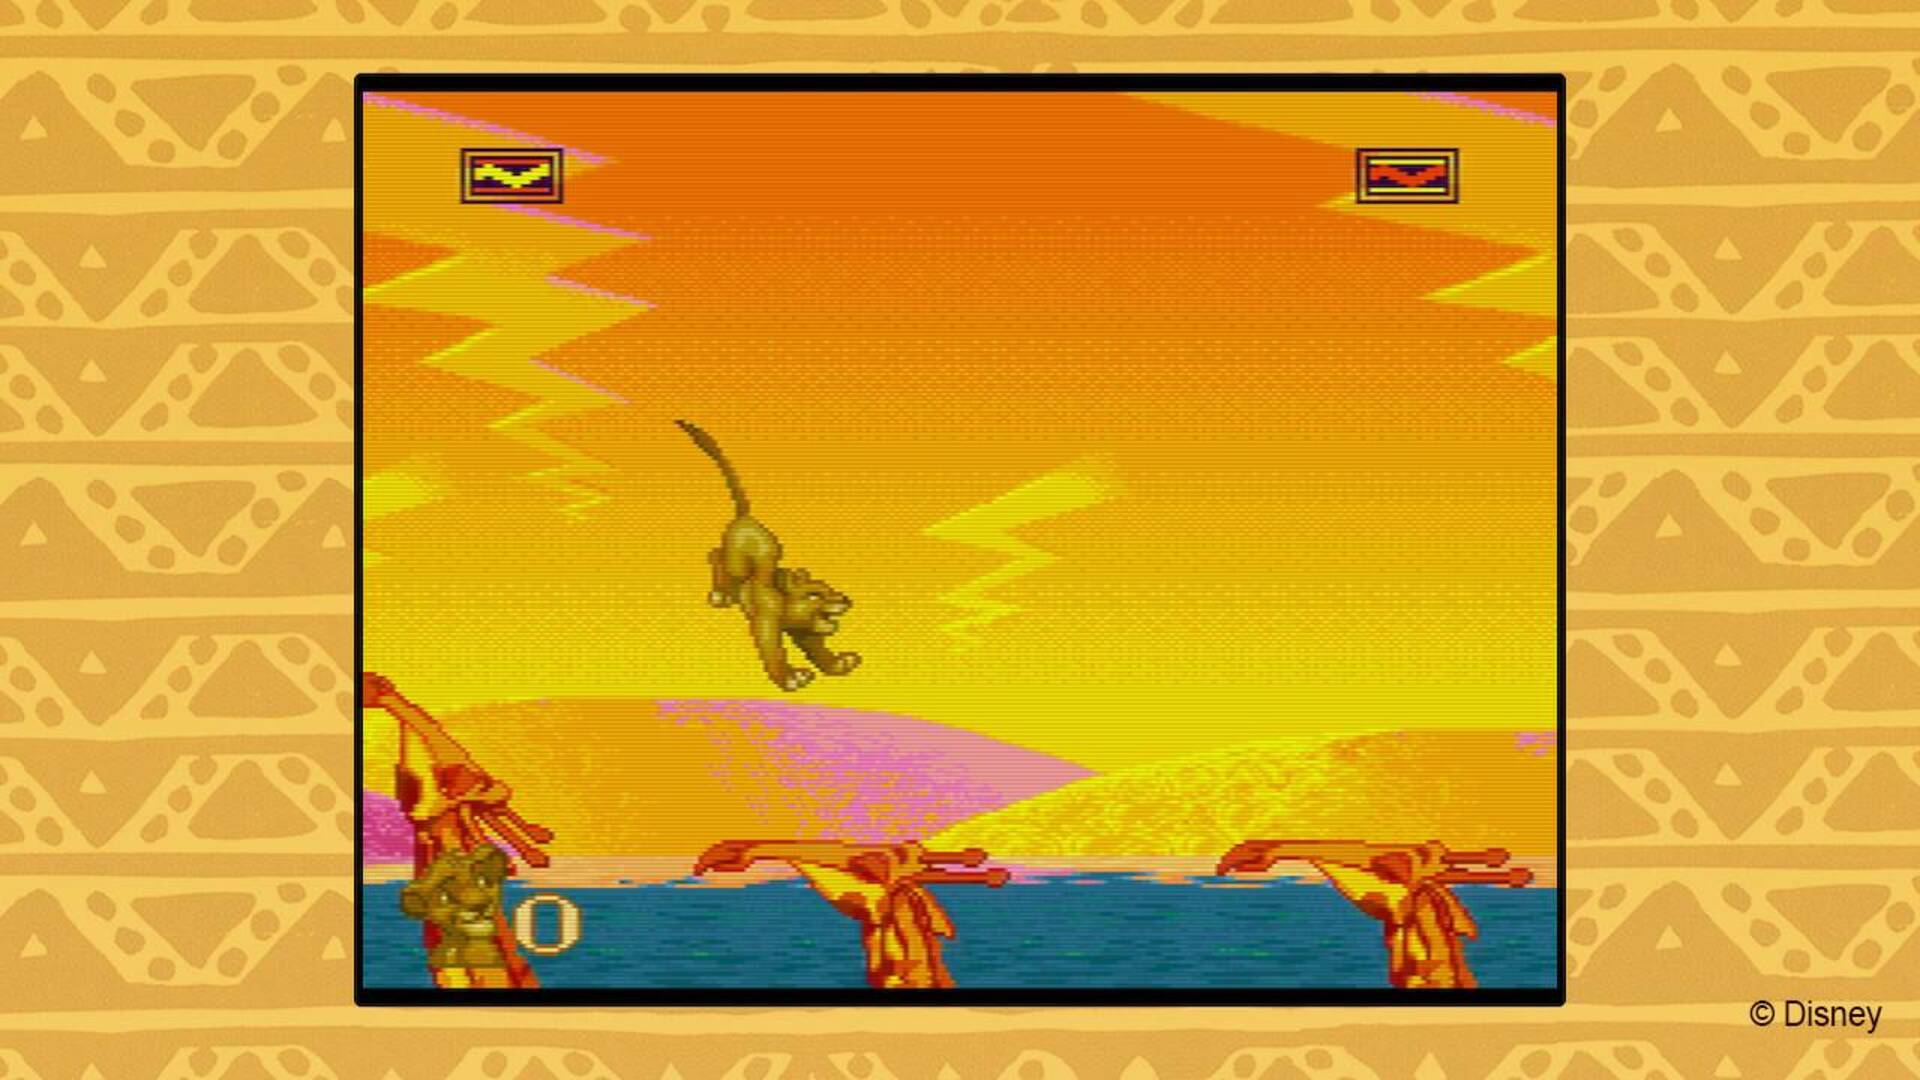 Disney's 16-Bit Classics Aladdin and The Lion King Are